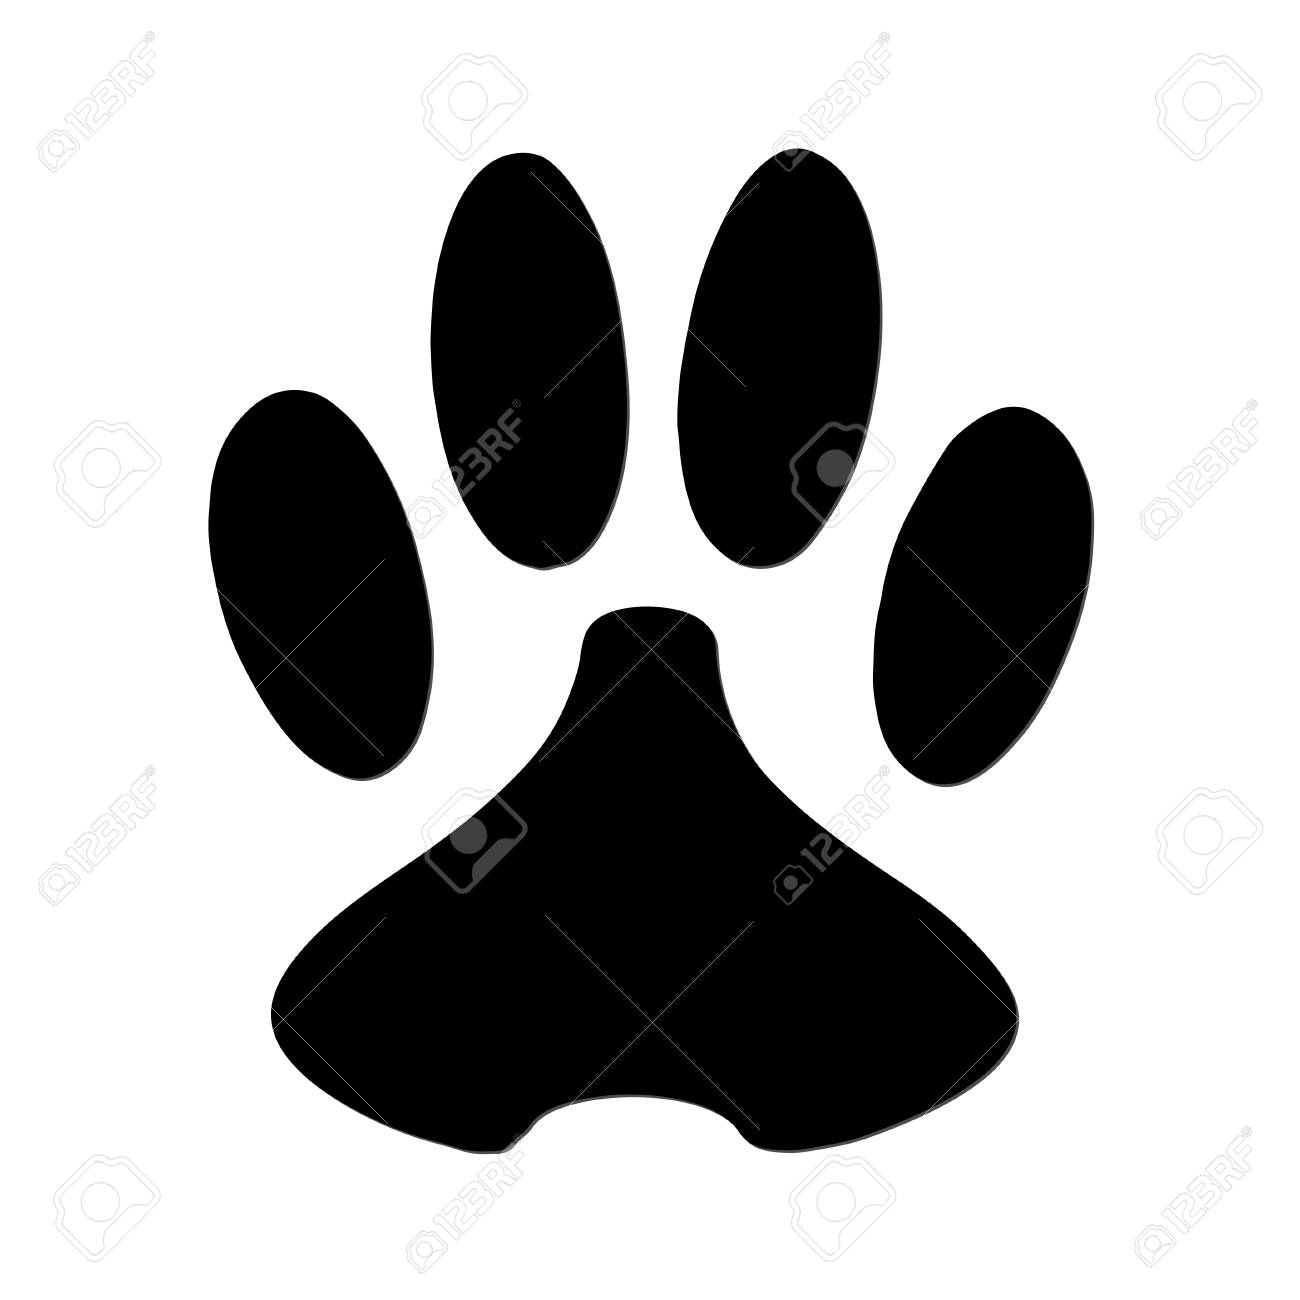 paw print royalty free cliparts vectors and stock illustration rh 123rf com vector paw print free vector dog paw print clip art free